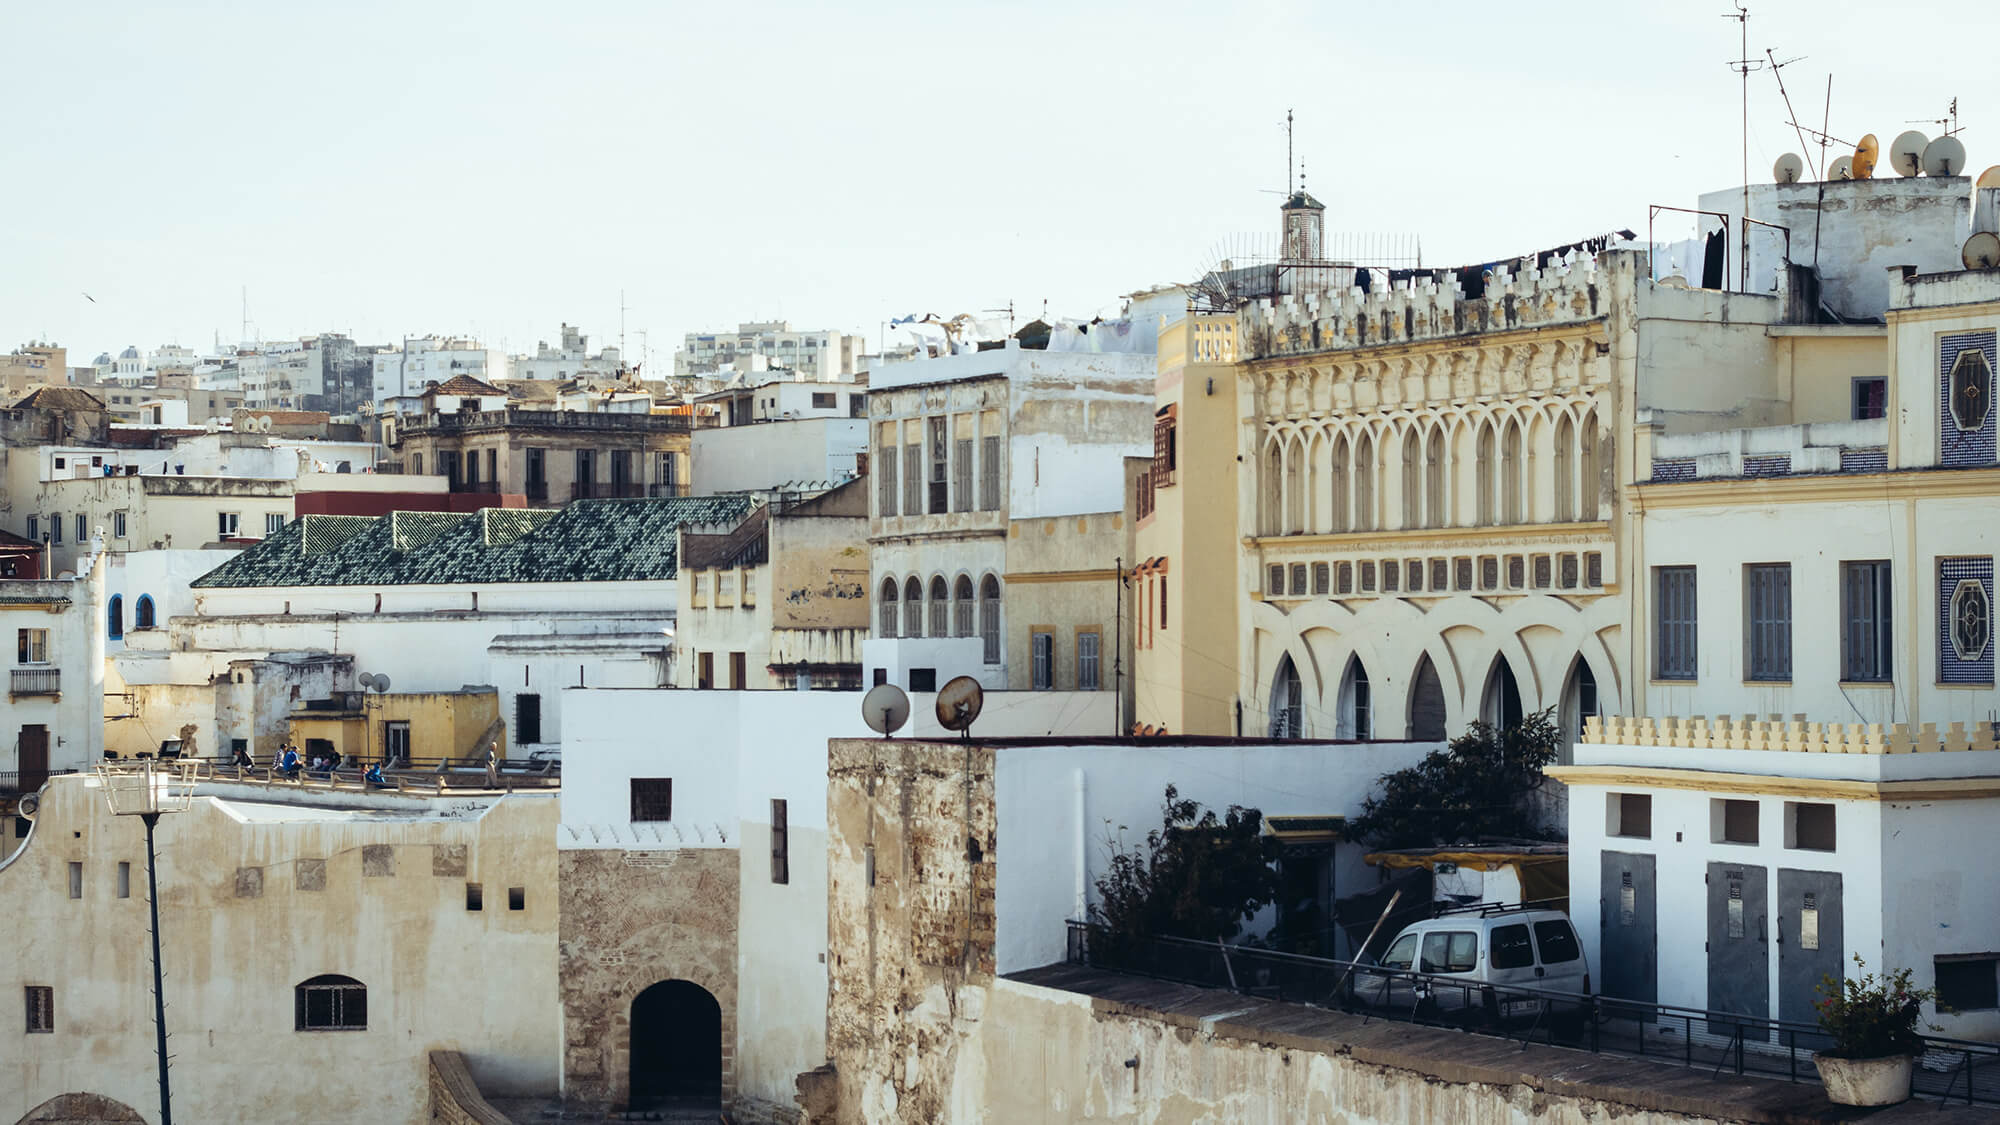 Sahara Desert Tour - What to Do and See in Tangier - The Exciting Port City of Morocco - Old Medina